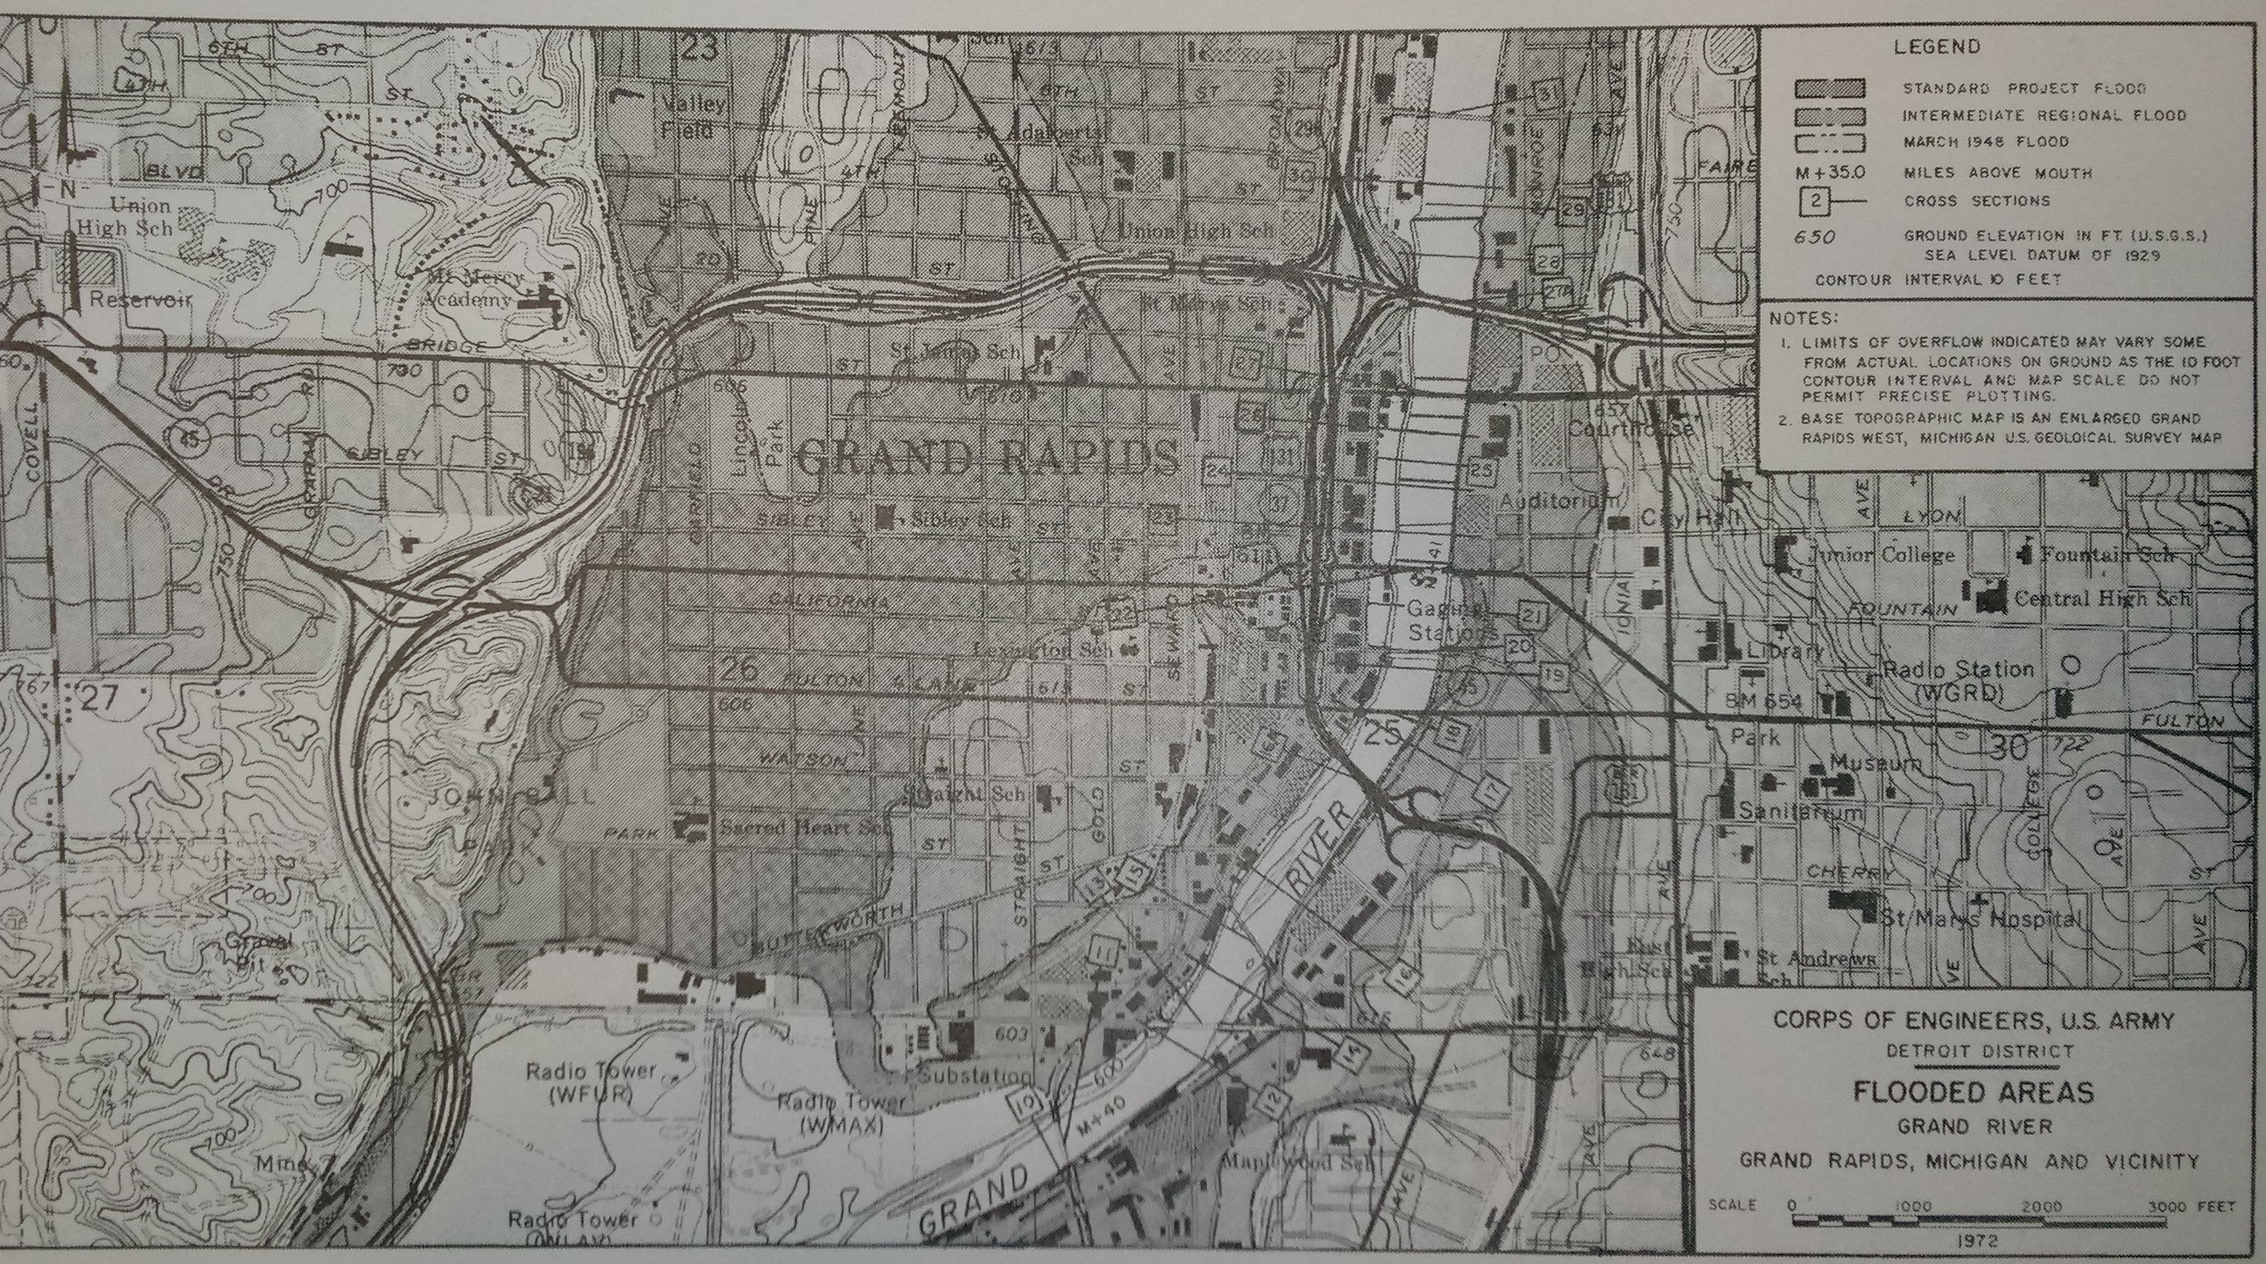 A 1972 floodplain map from the US Army Corp of Engineers showing most of the westside and downtown submerged during the flood of 1948.